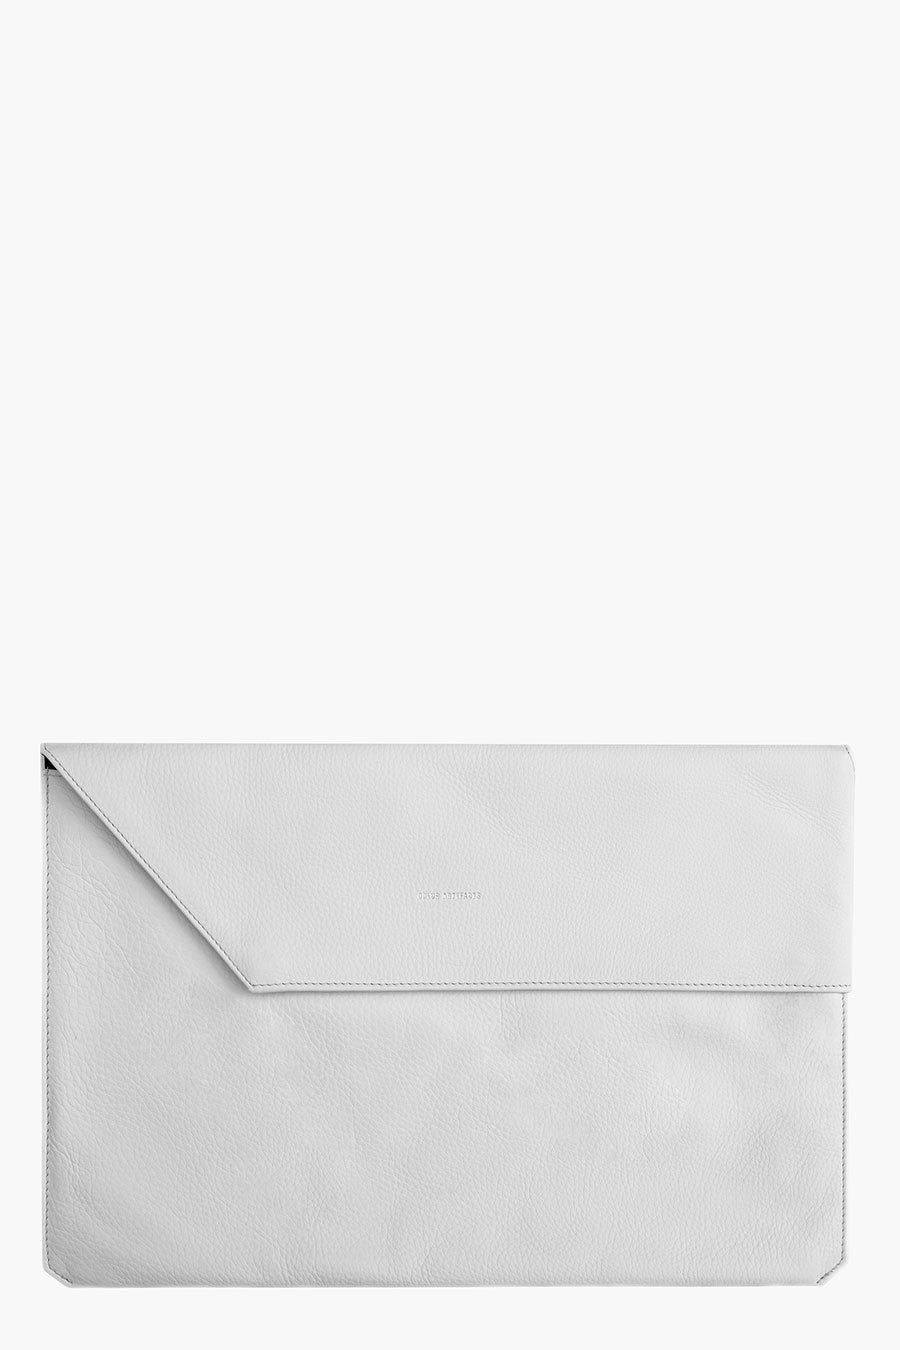 Odeur Artefacts Fold Laptop Case: White Leather